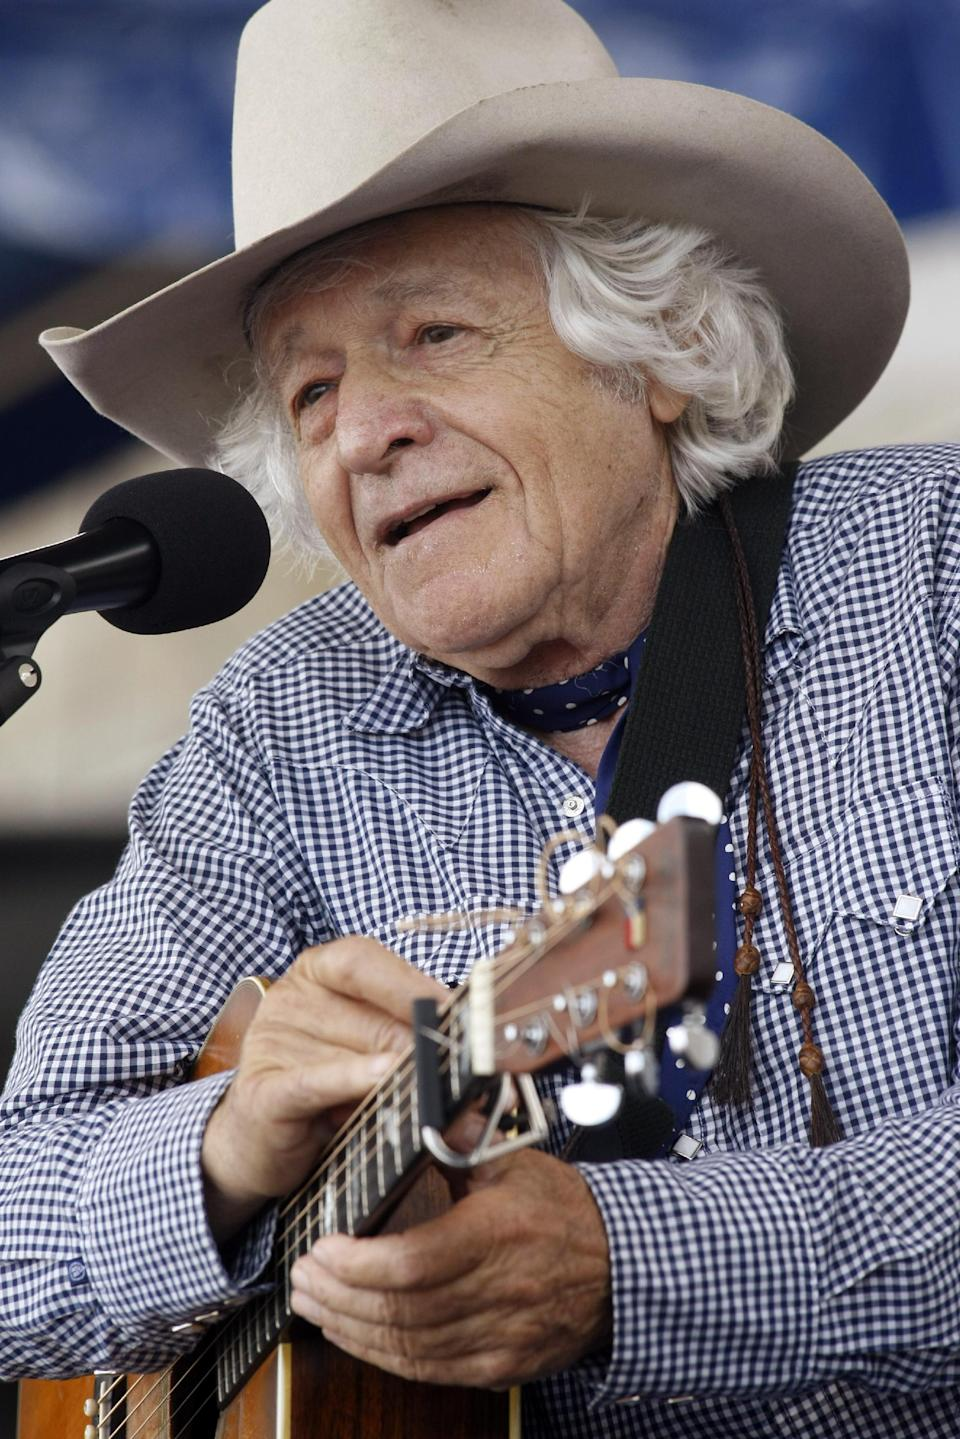 Ramblin' Jack Elliott performs at the 54th edition of the Newport Folk Festival in Newport, R.I., on Sunday, July 28, 2013. (AP Photo/Joe Giblin)